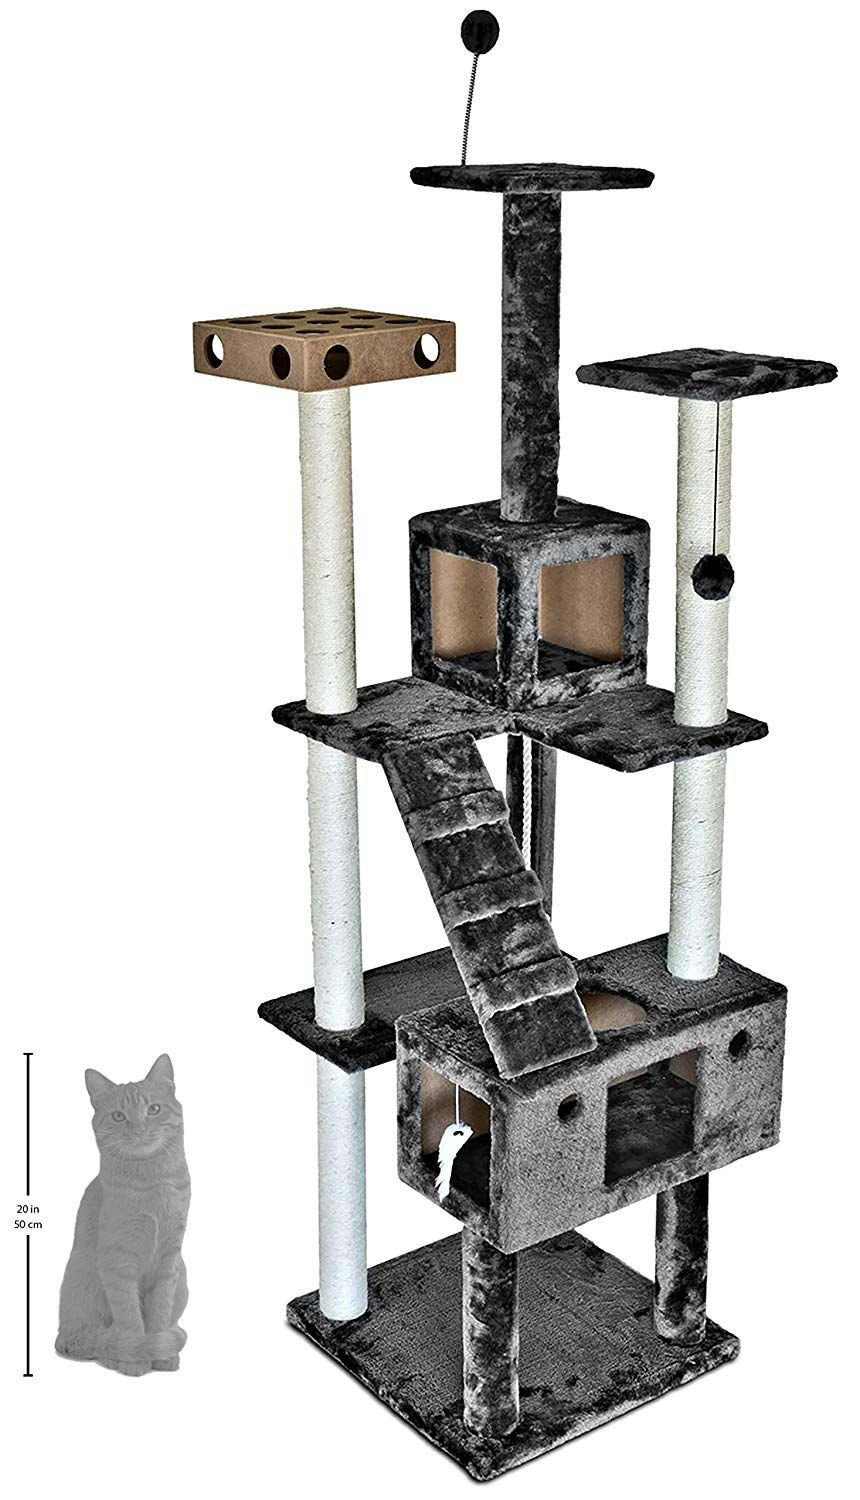 Tiger Tough Floor To Ceiling Cat Tree House Furniture For Kittens And Cats Multiple Color Style Cat Condos 45 To 127 Tal Cat Tree House Pet Tiger Cat Condo